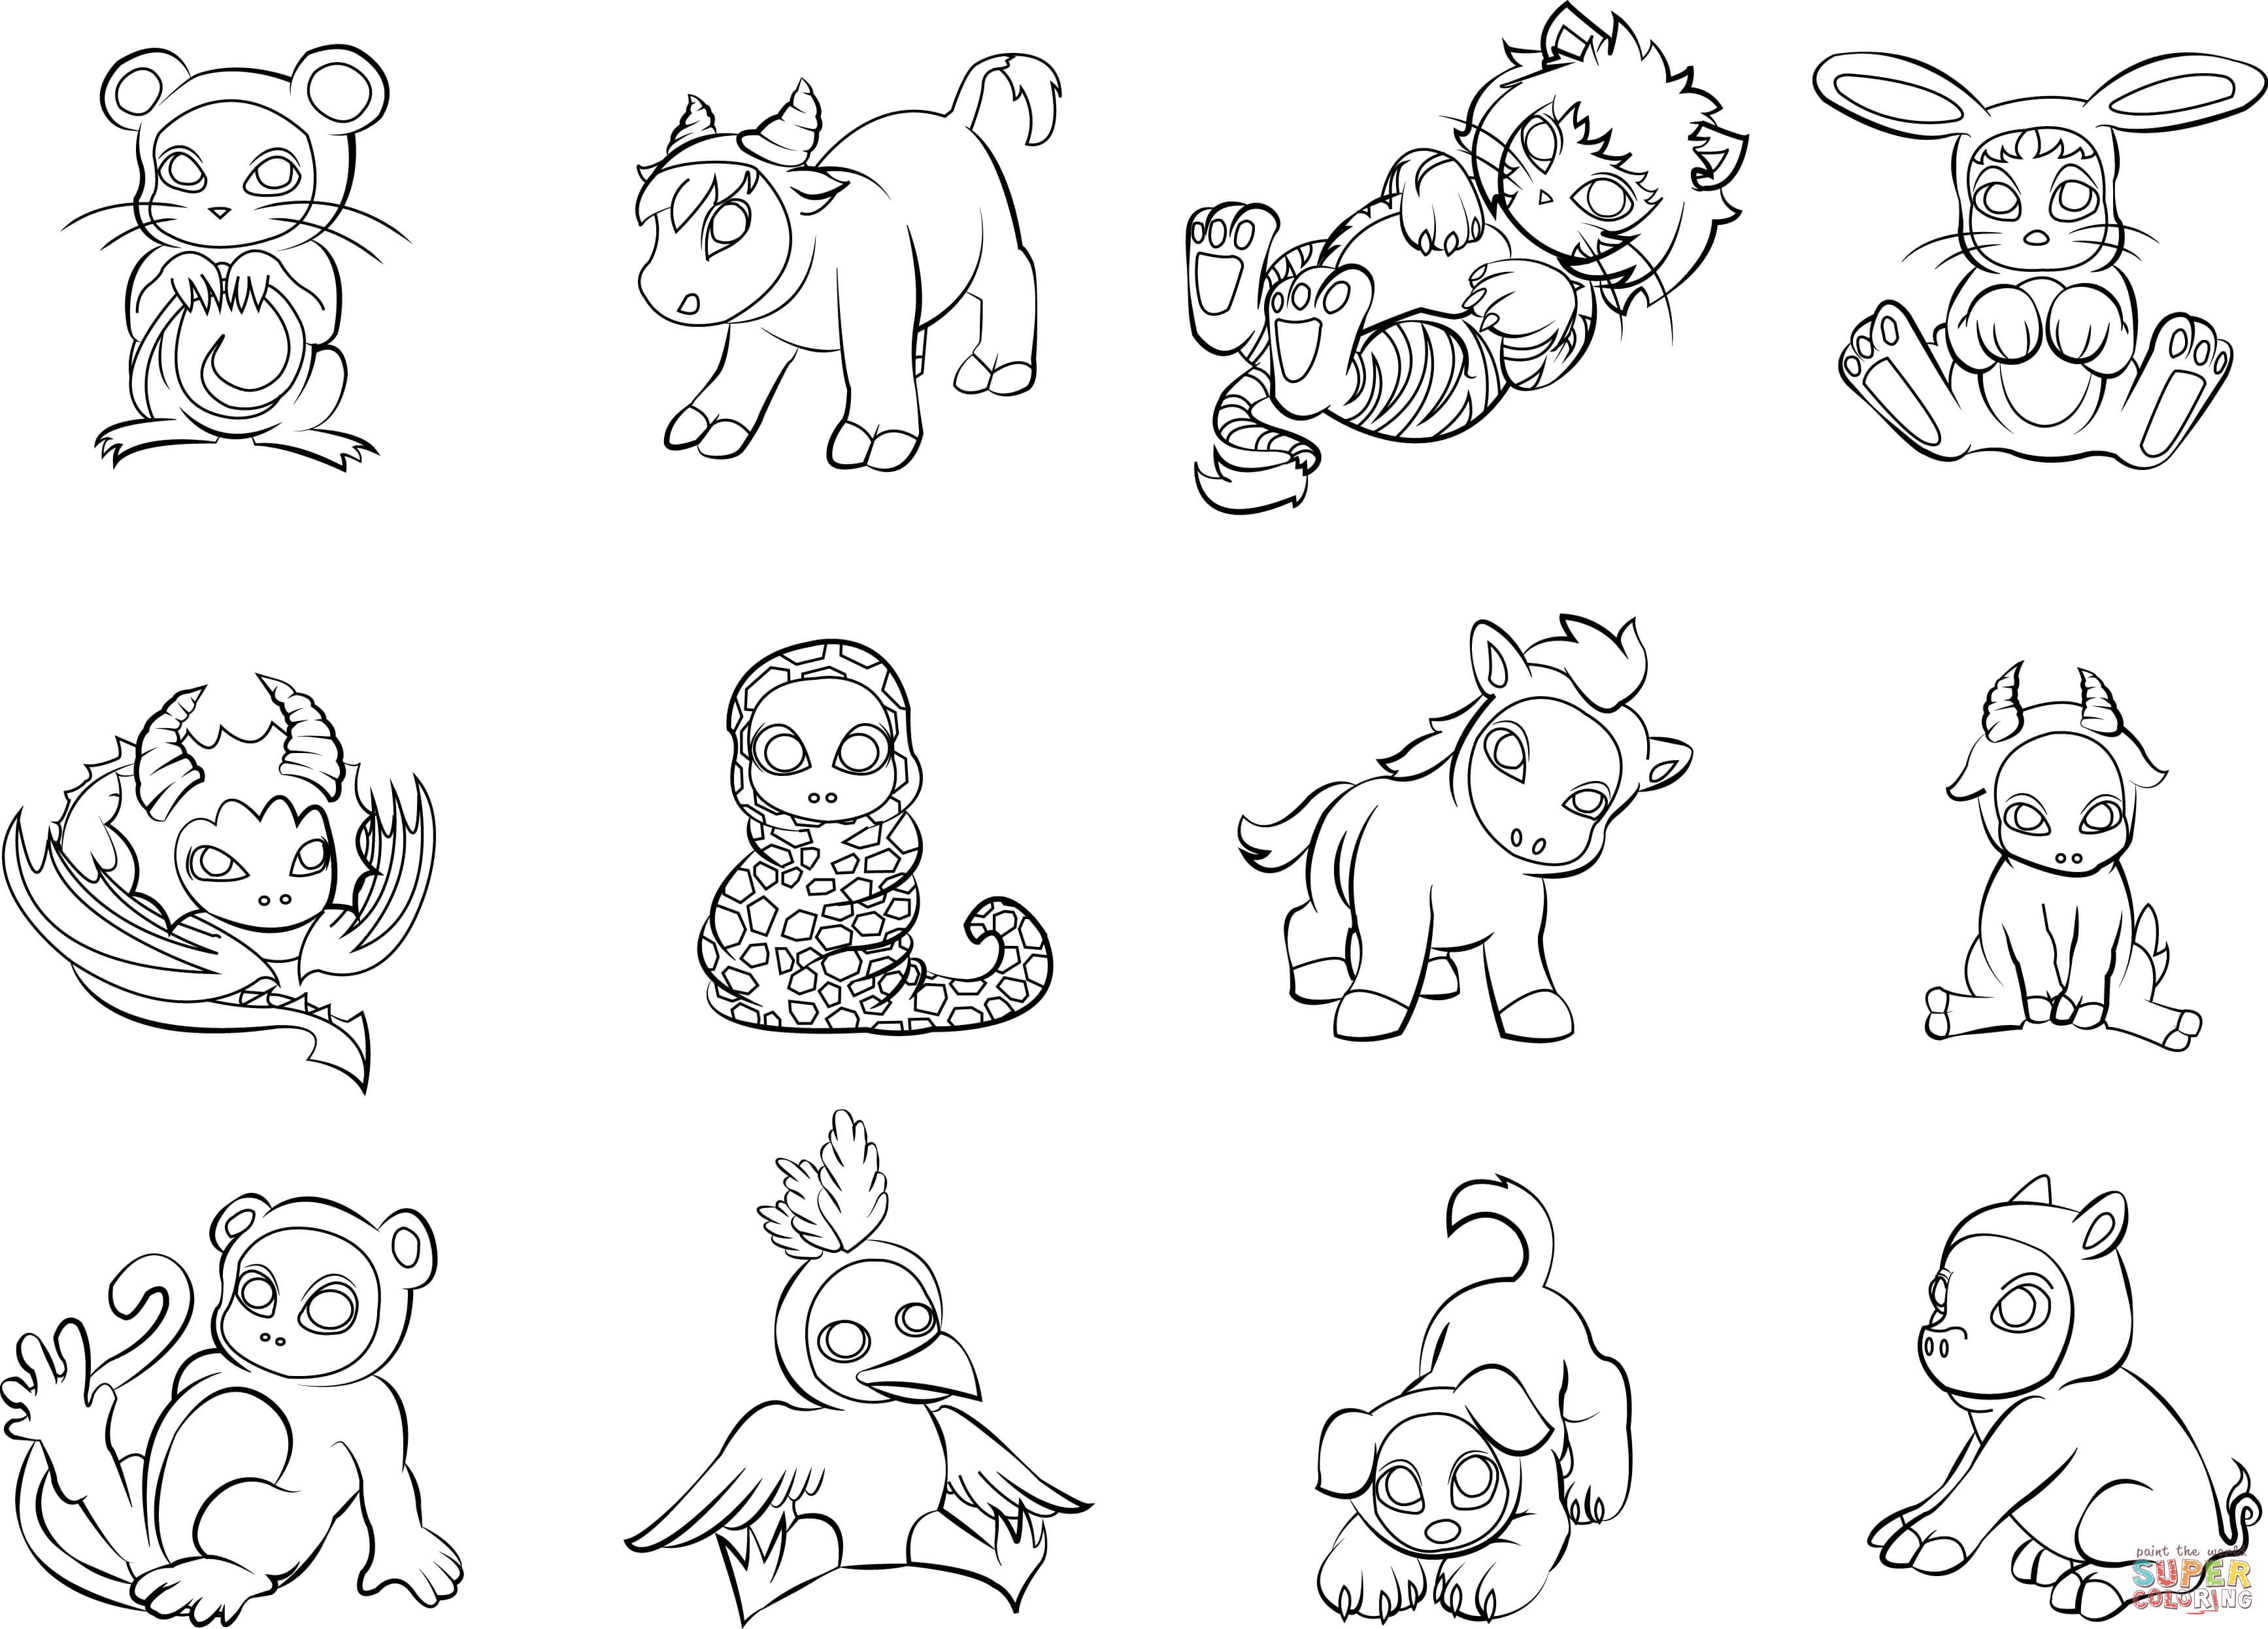 12 Chinese Zodiac Animals Coloring Page